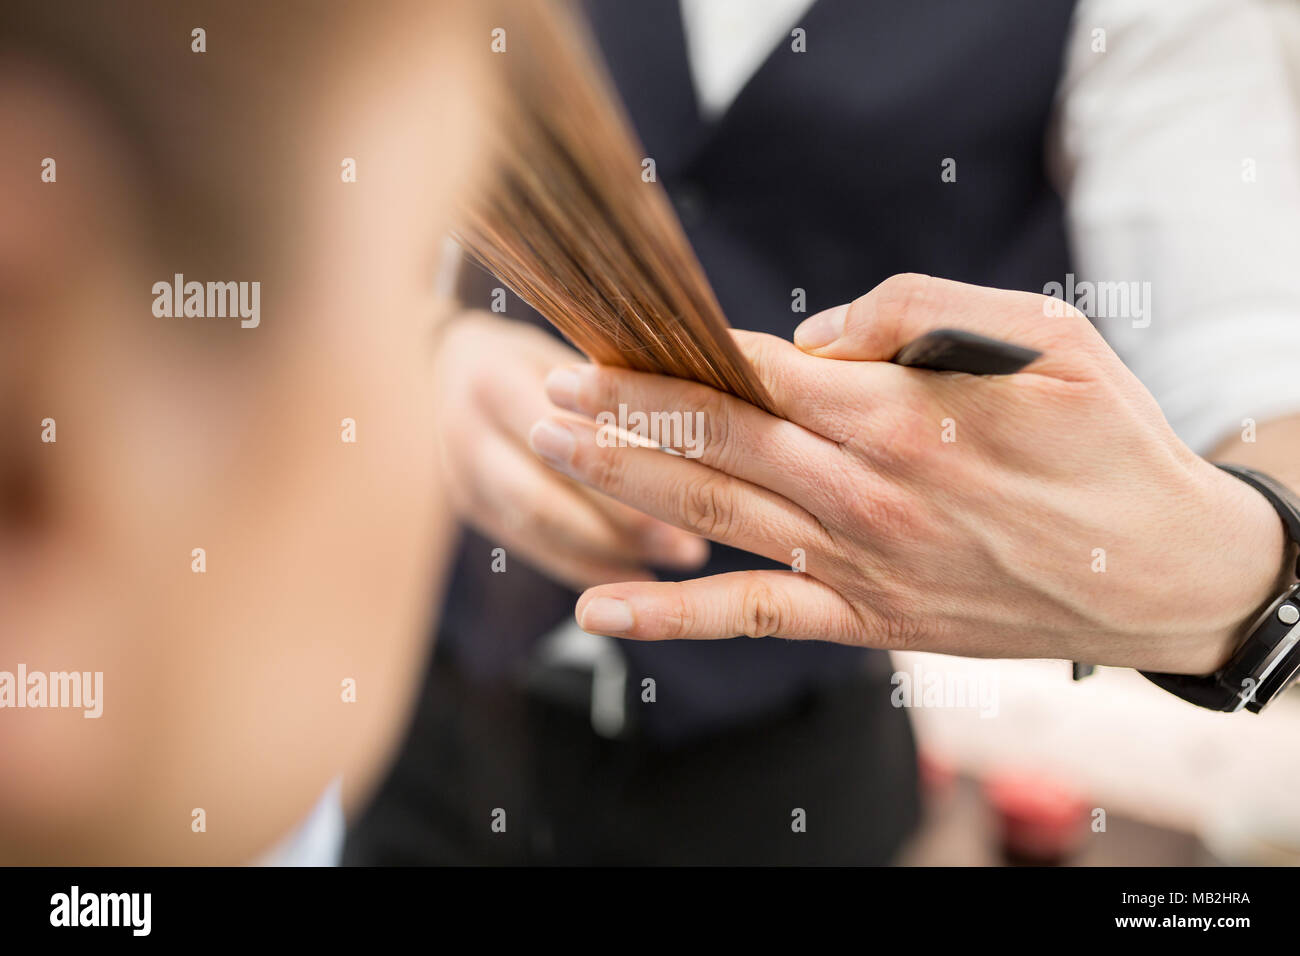 Cropped portrait of hairdresser hands holding hair strand for cut - Stock Image